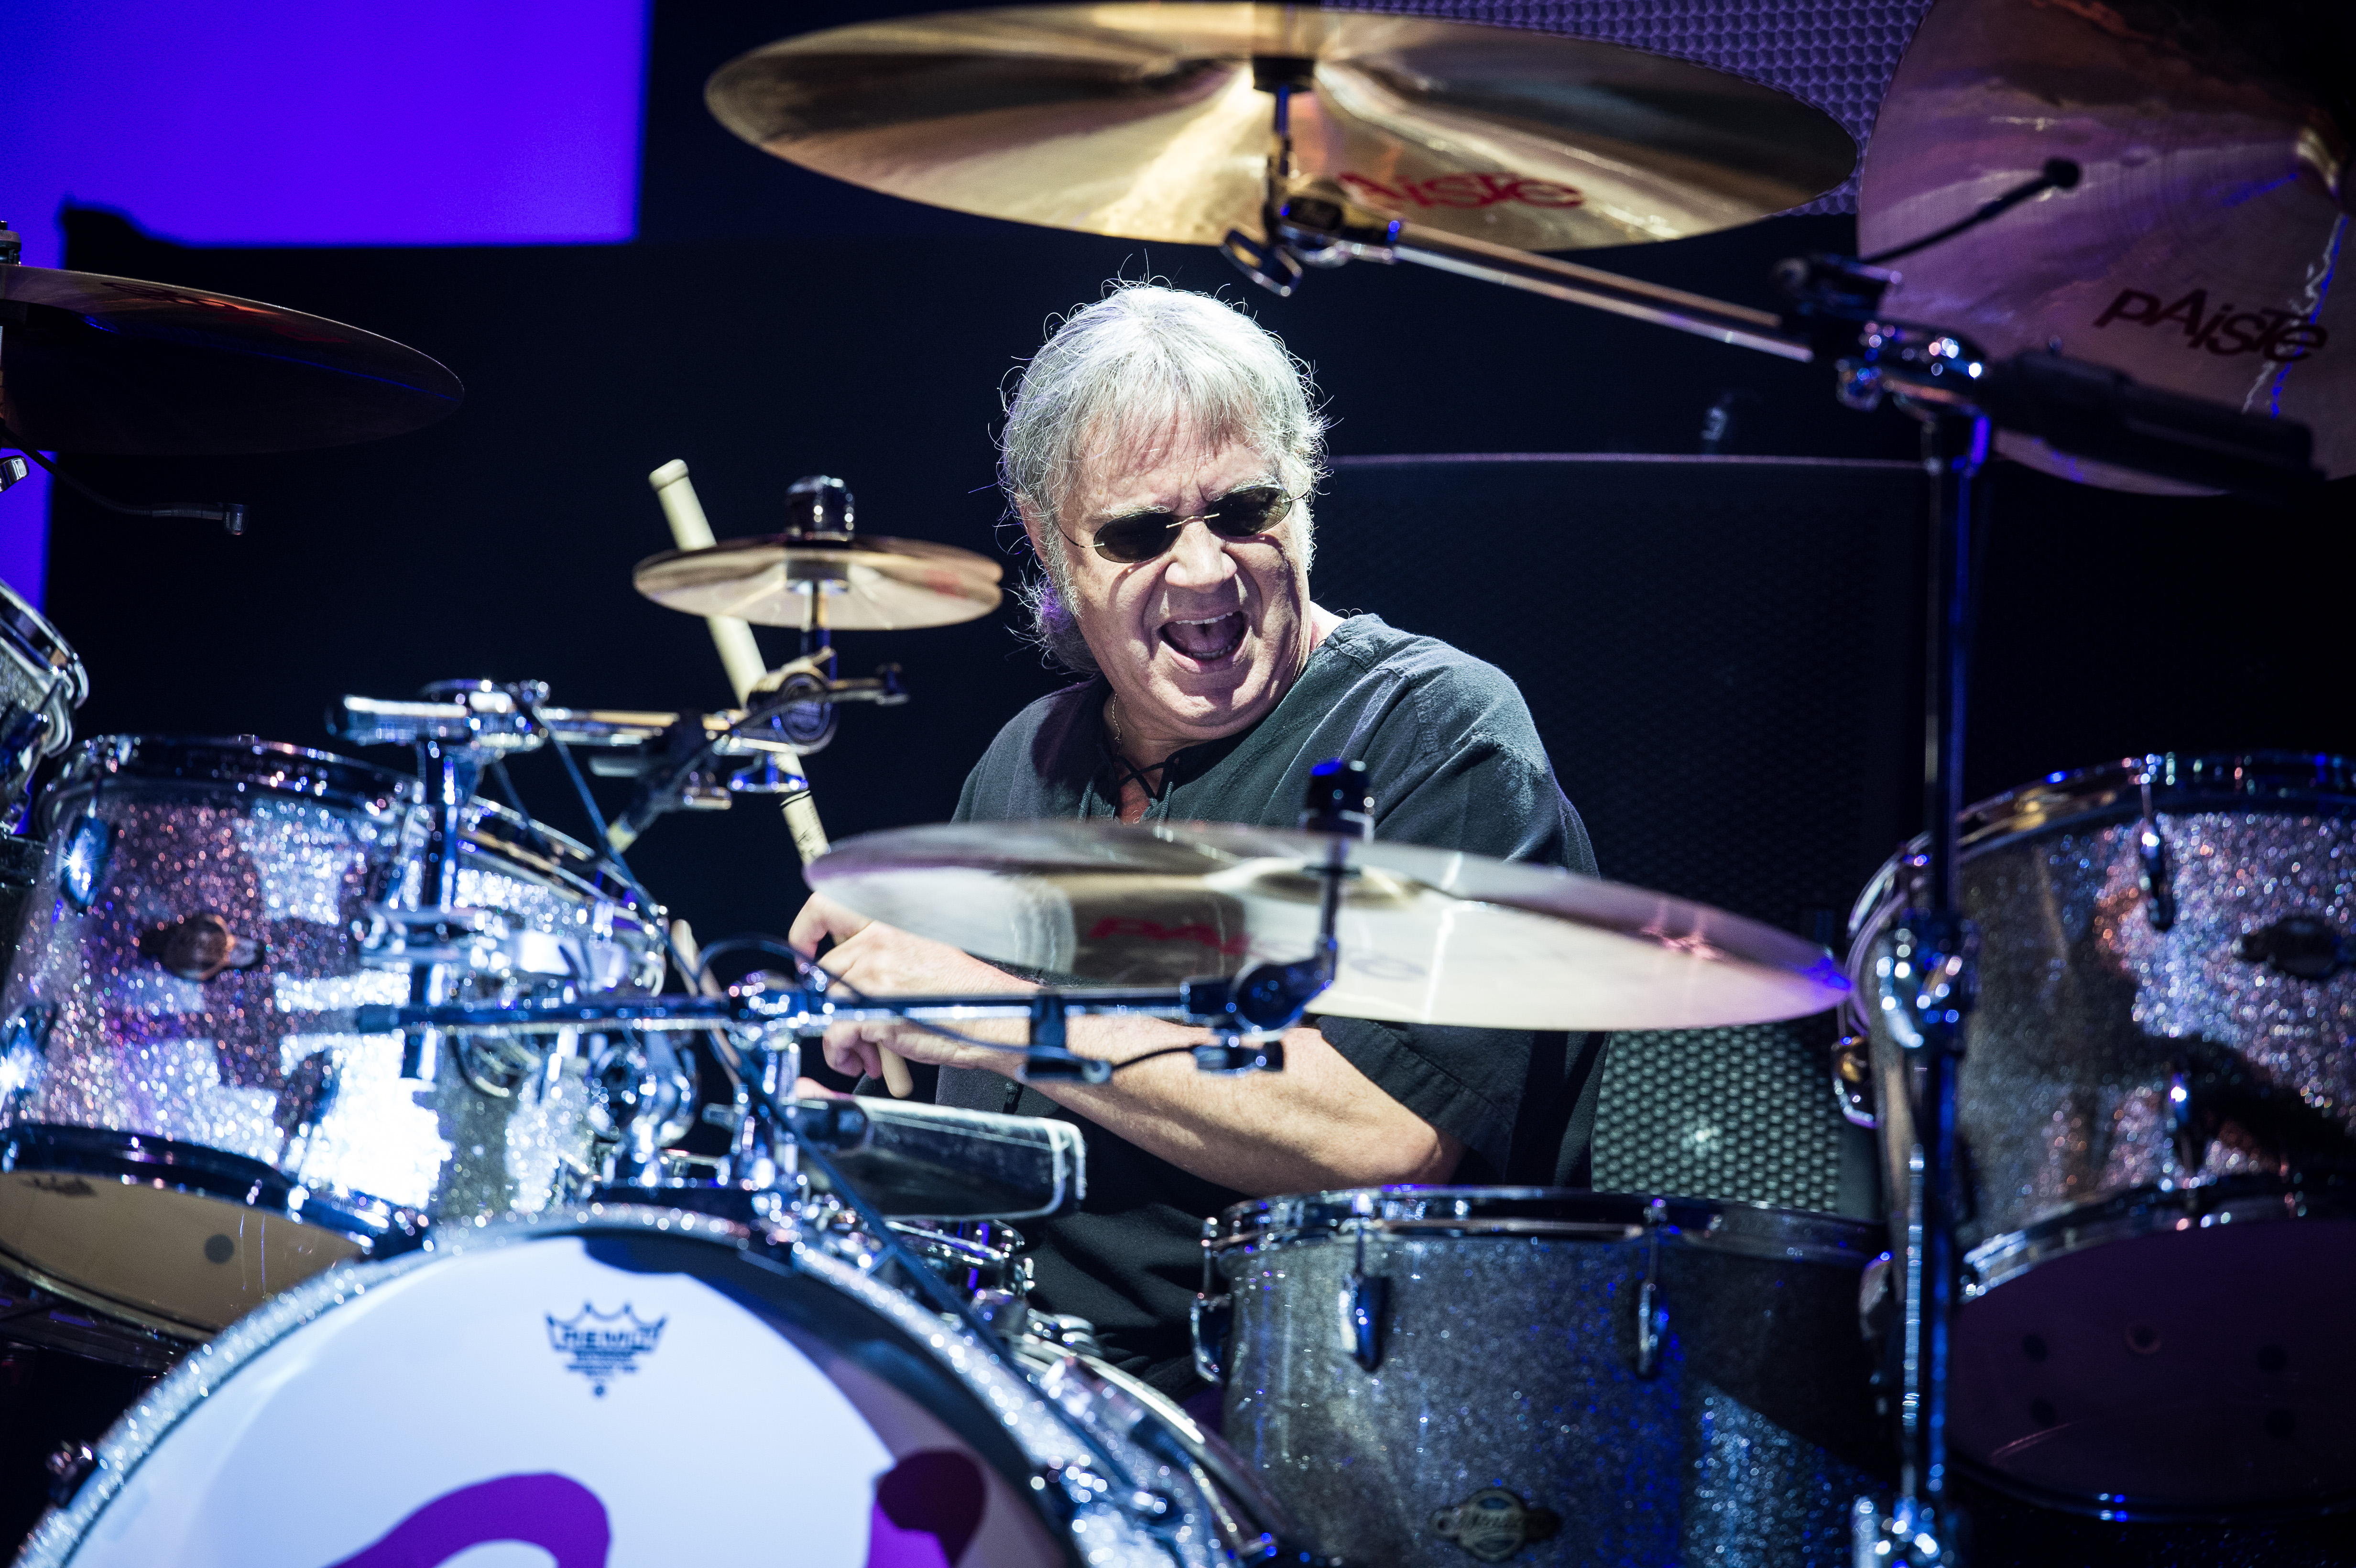 PARIS, FRANCE - OCTOBER 20: Ian Paice from Deep Purple performs at Le Zenith on October 20, 2013 in Paris, France. (Photo by